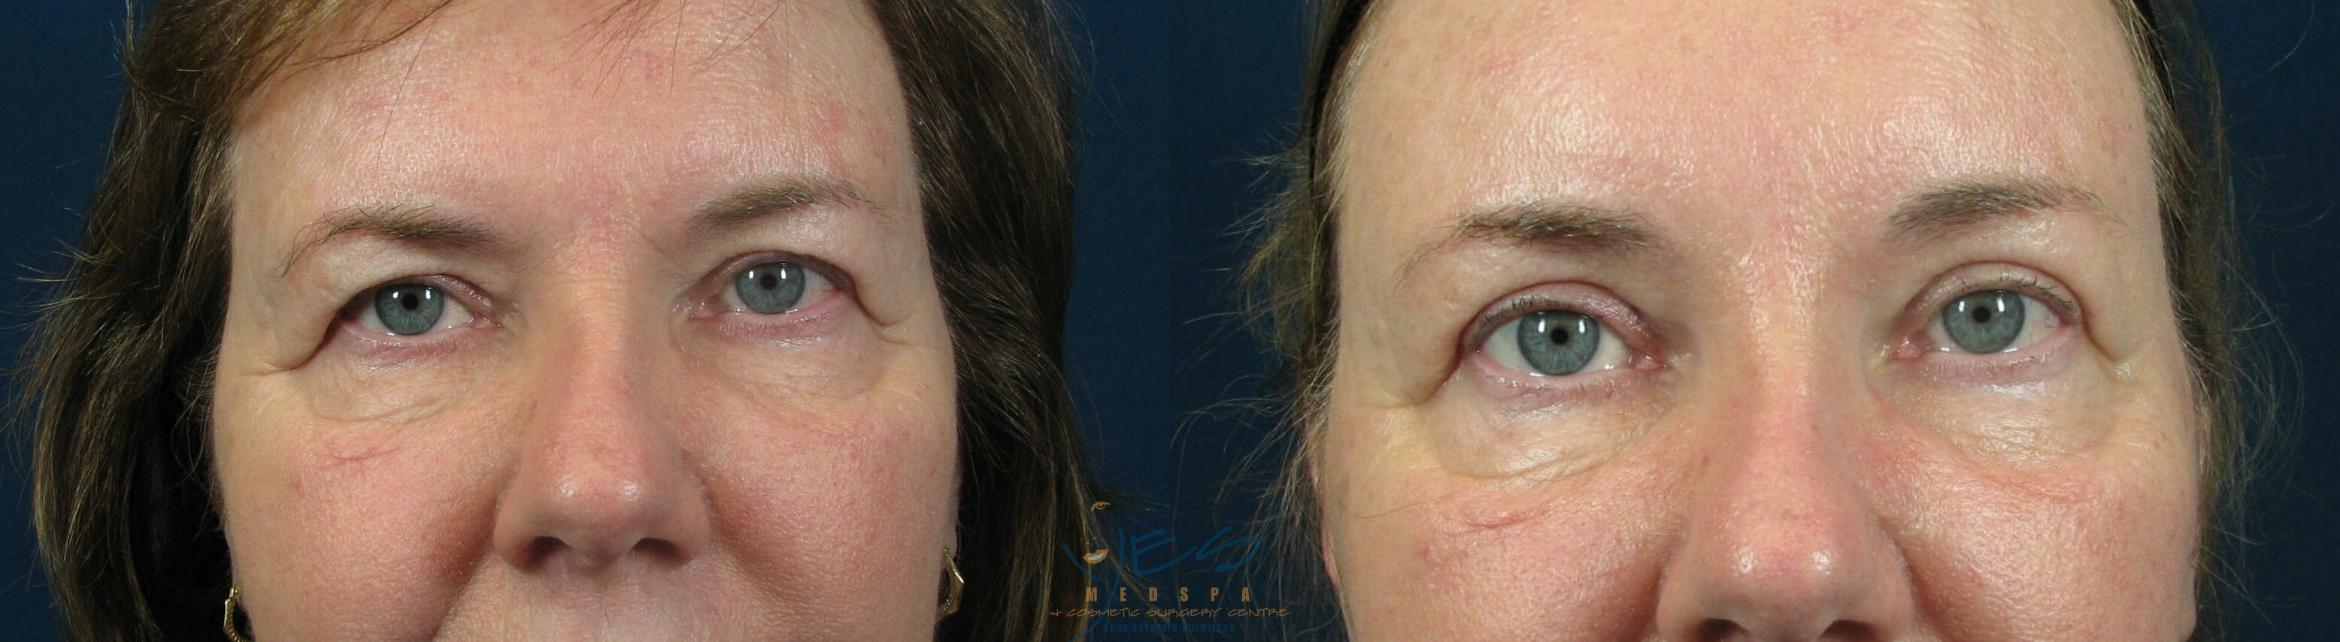 Upper Eyelid Blepharoplasty Case 59 Before & After View #1 | Langley, BC | YES Medspa & Cosmetic Surgery Centre